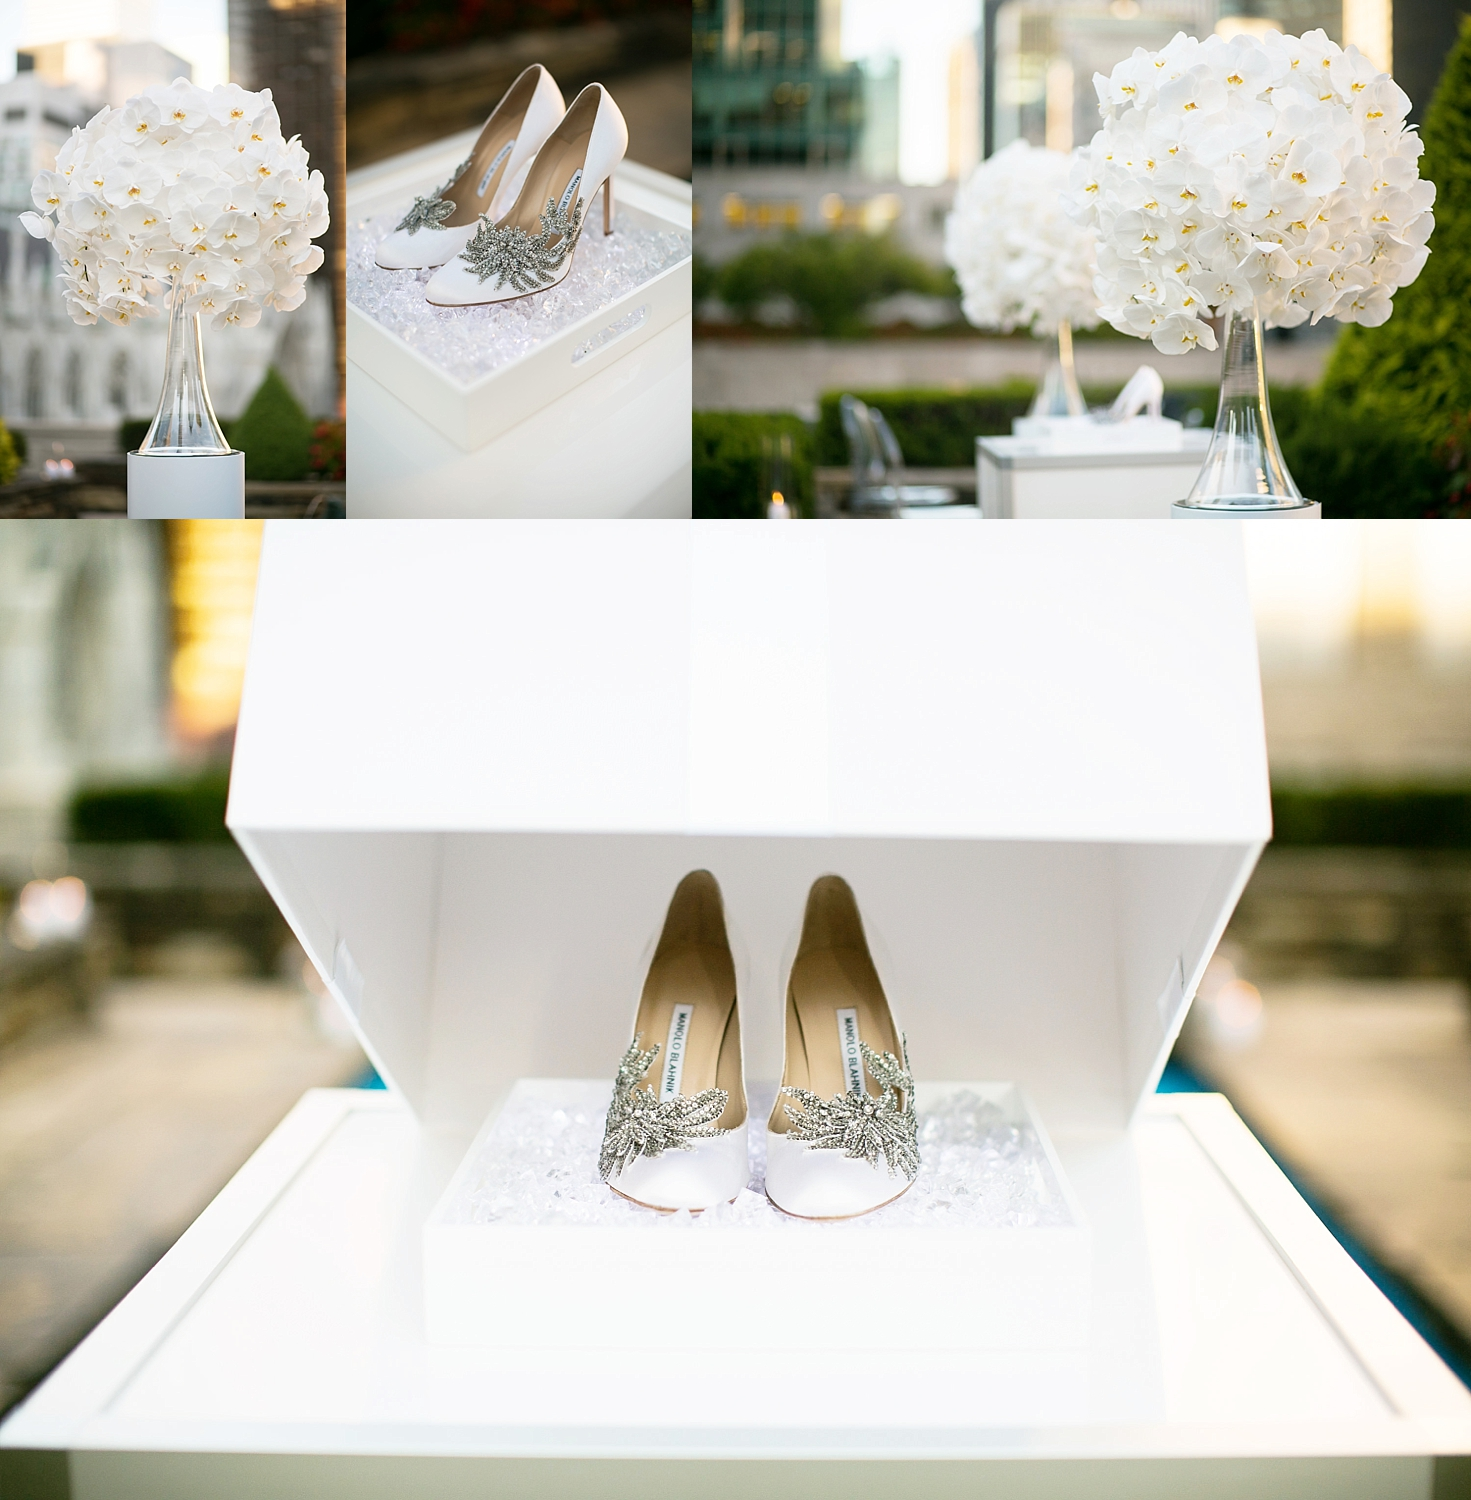 620 Loft and Garden New York luxury floral design & Manolo Blahnik shoes The Heart Bandits